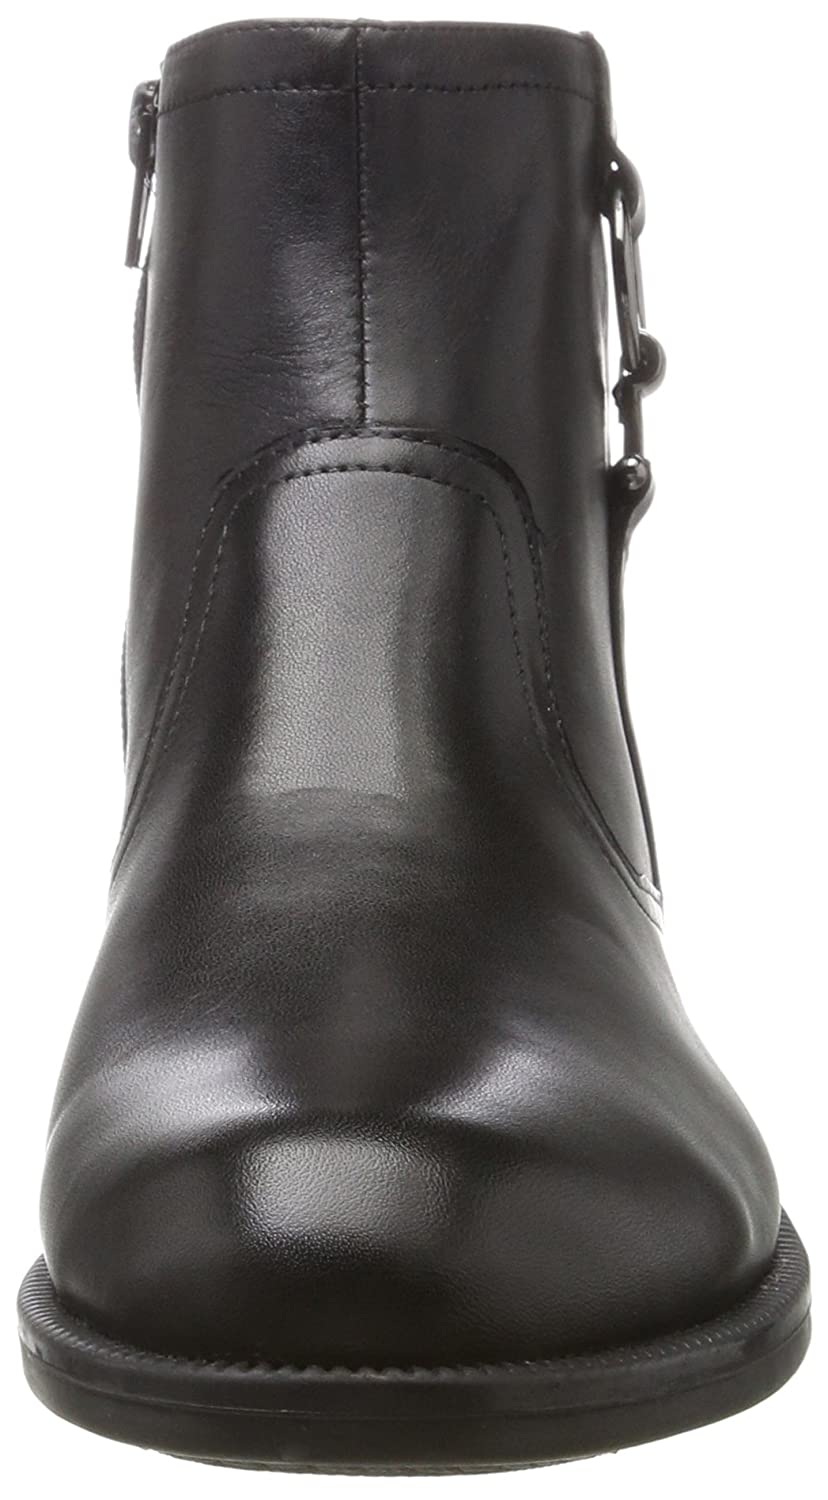 24 Chaussures Clyde Stonefly Femme Calf Bottes Chelsea A4S8q